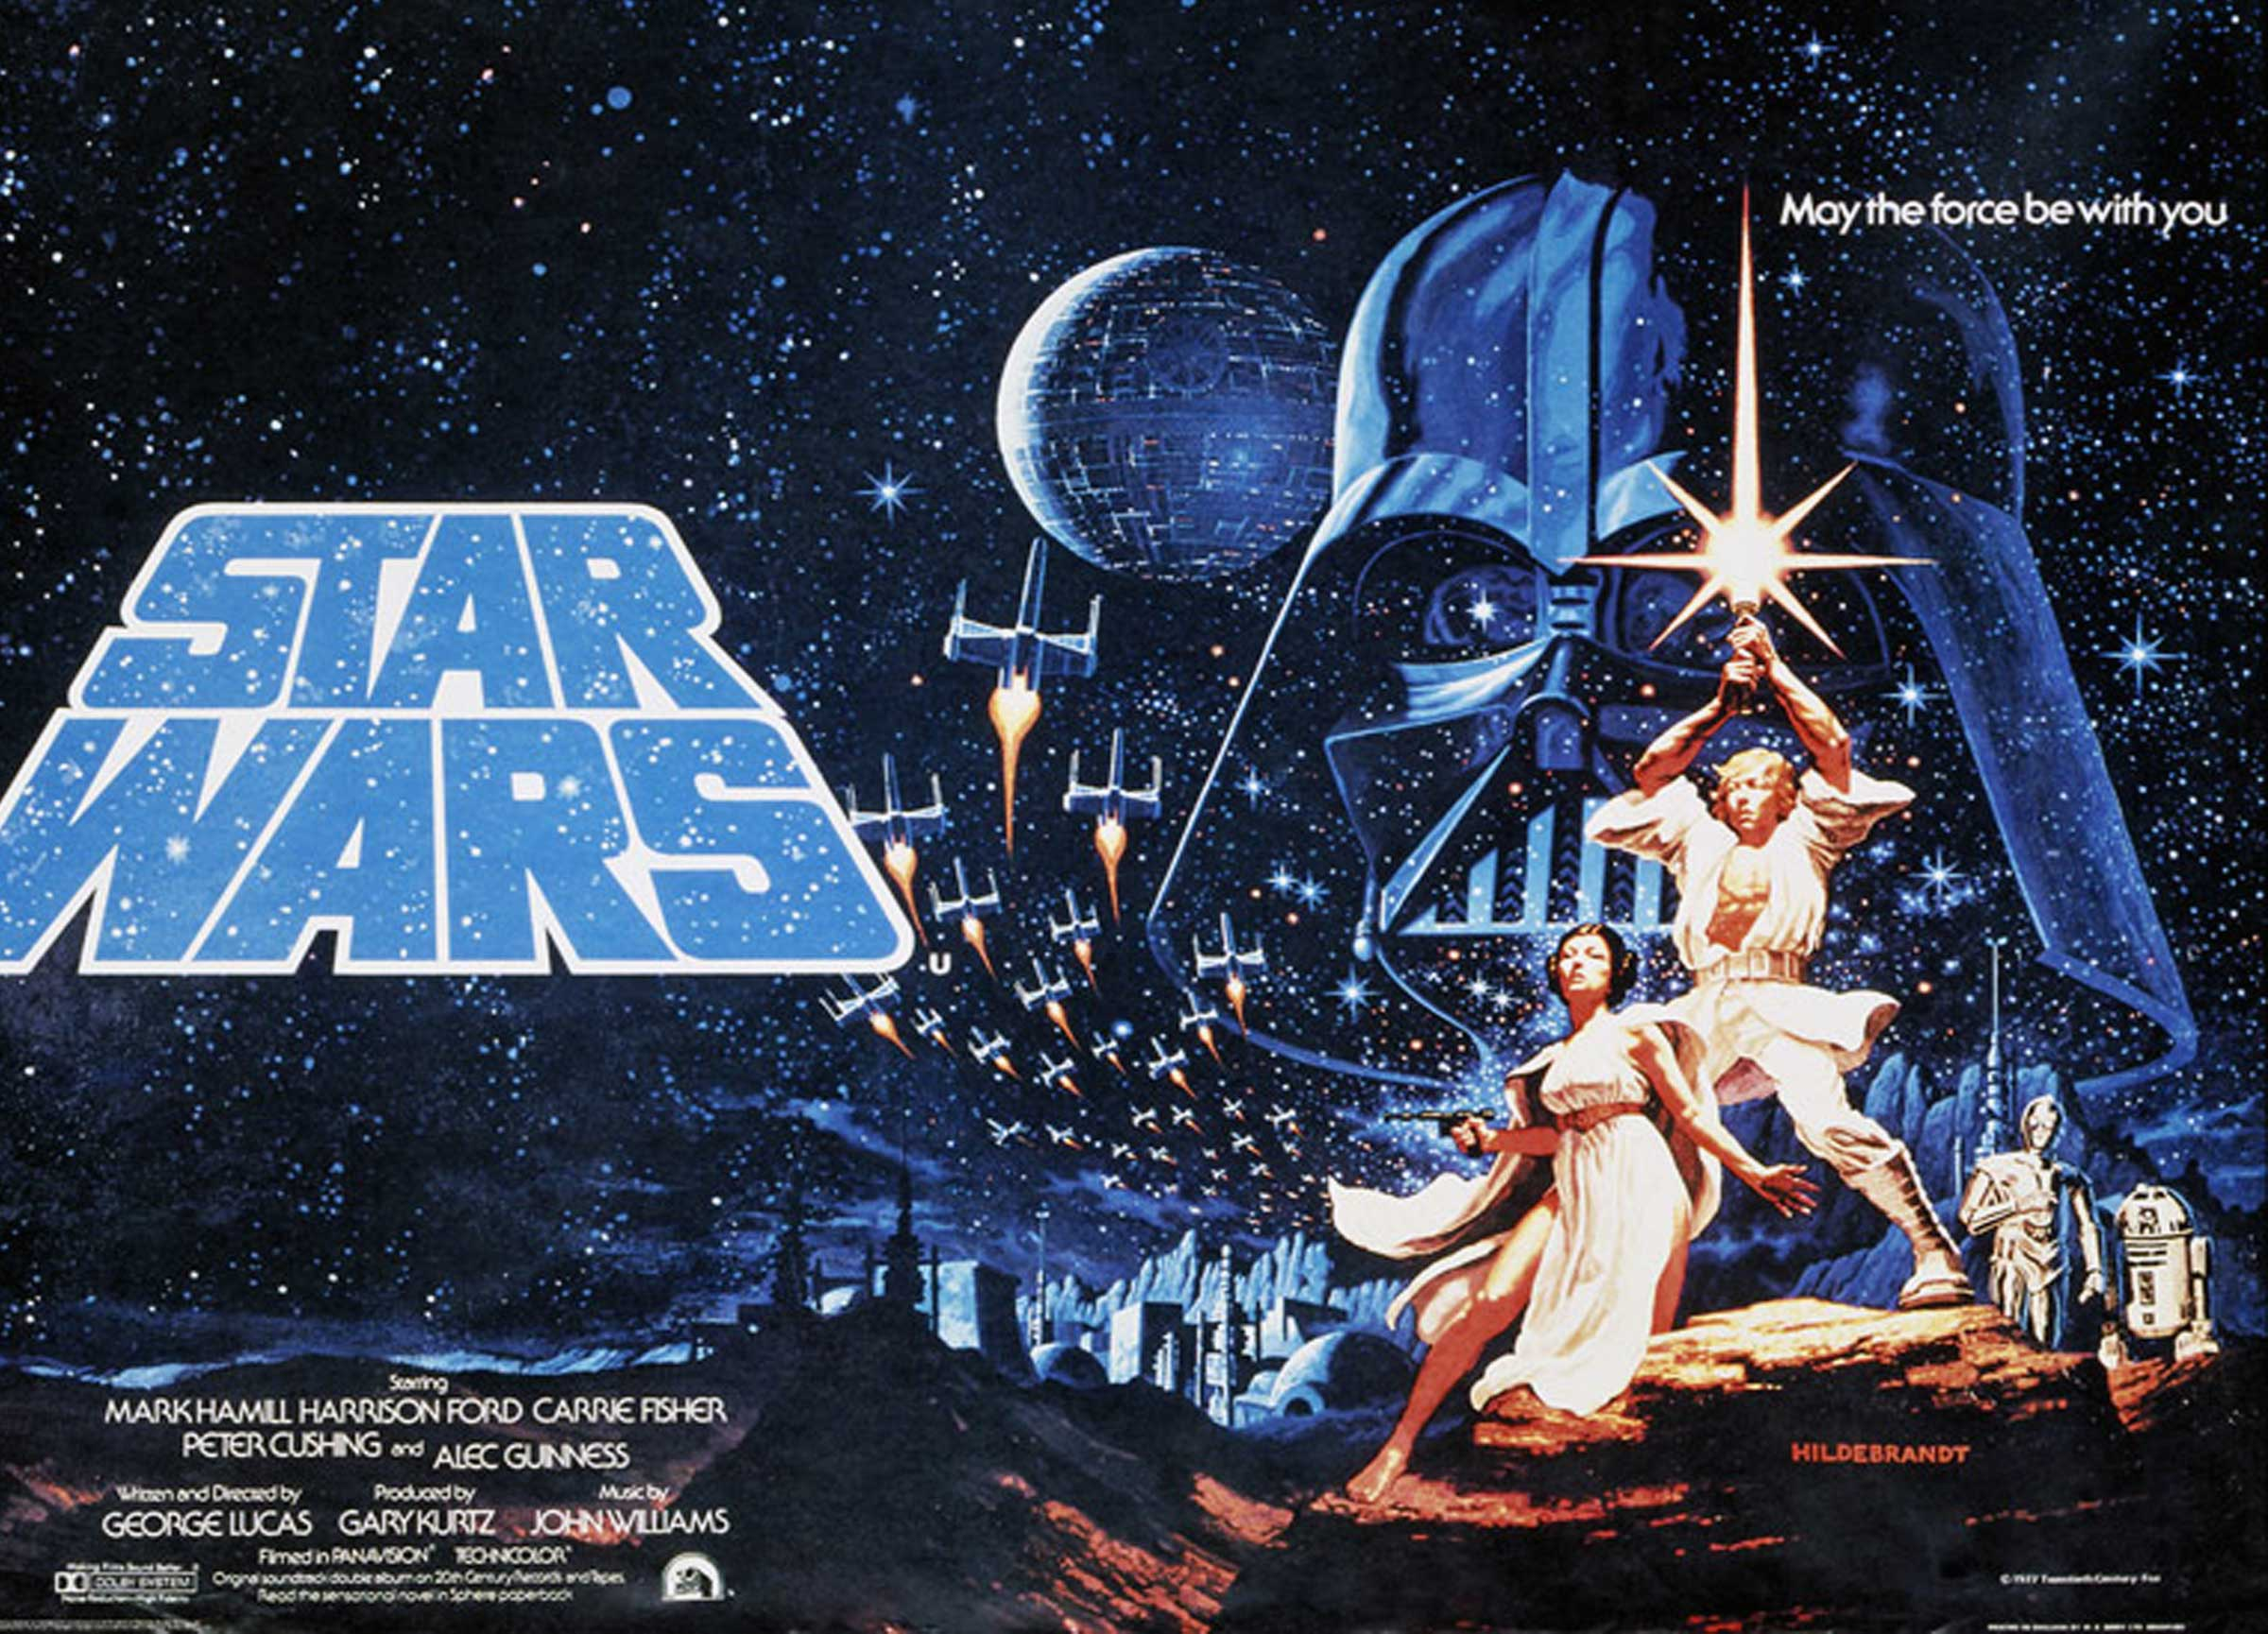 Star Wars Poster Original 1977 4